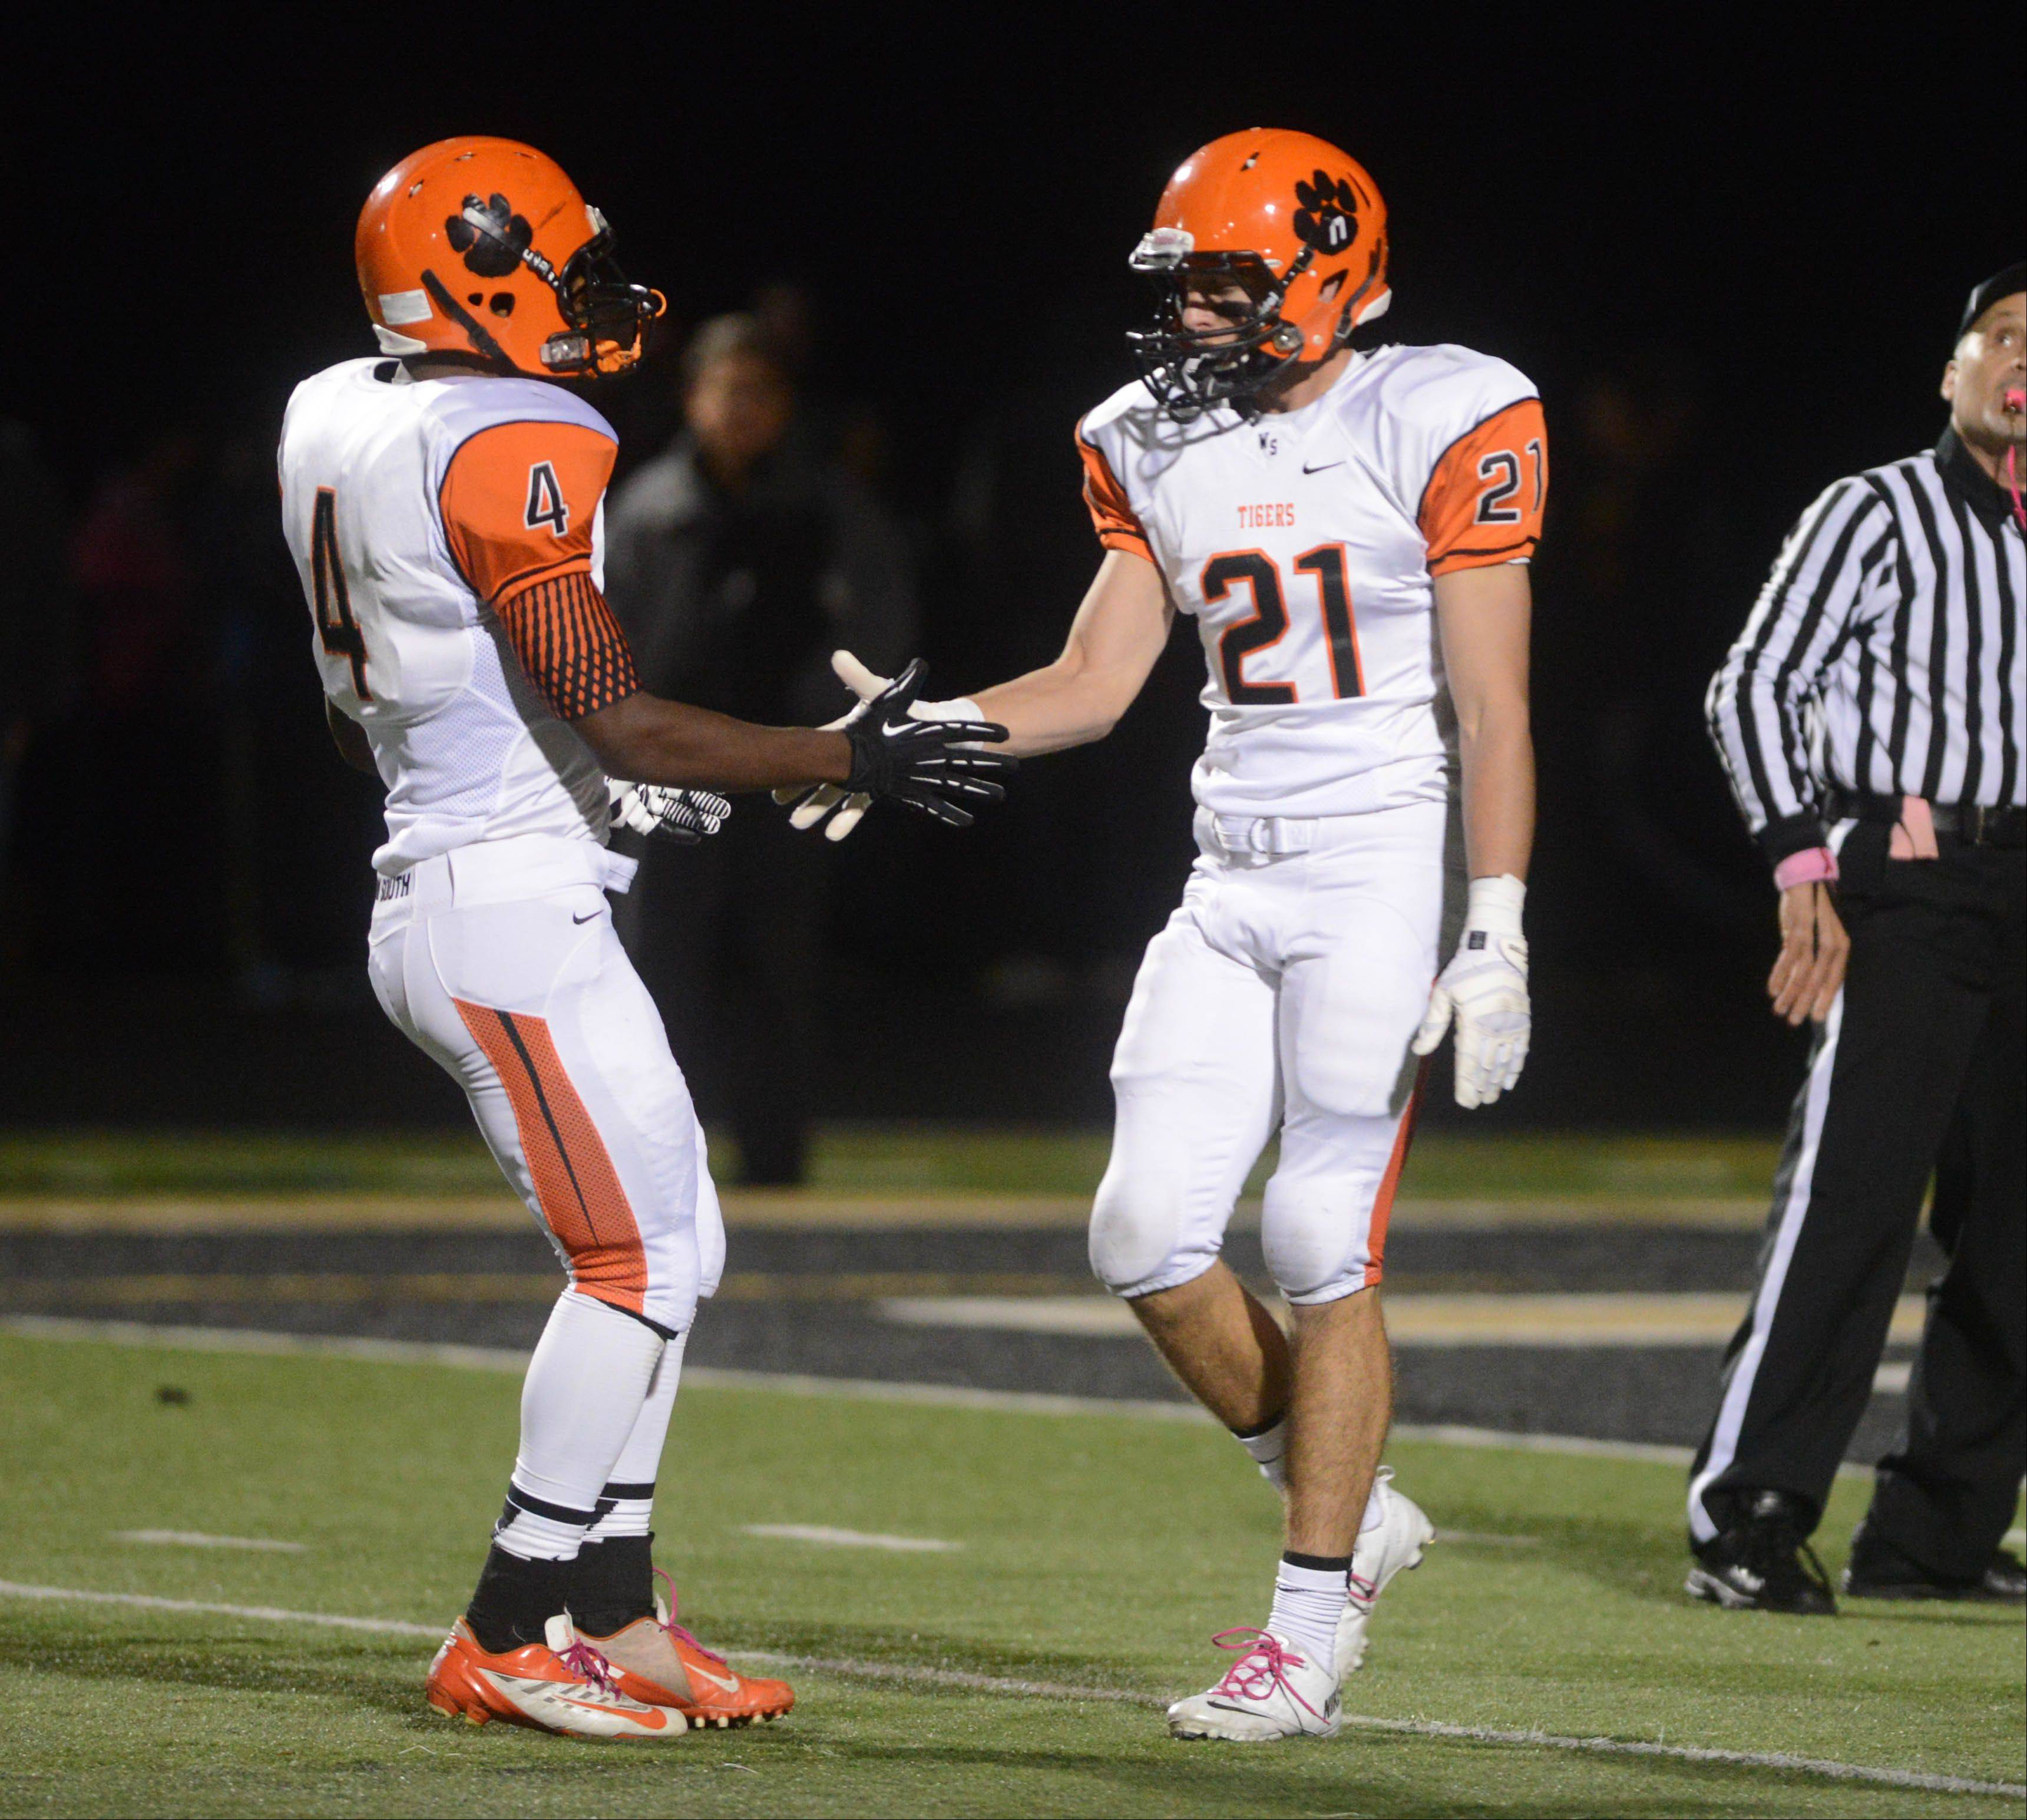 Ben Jackson,left, and Jake Schultz of Wheaton Warrenville South.